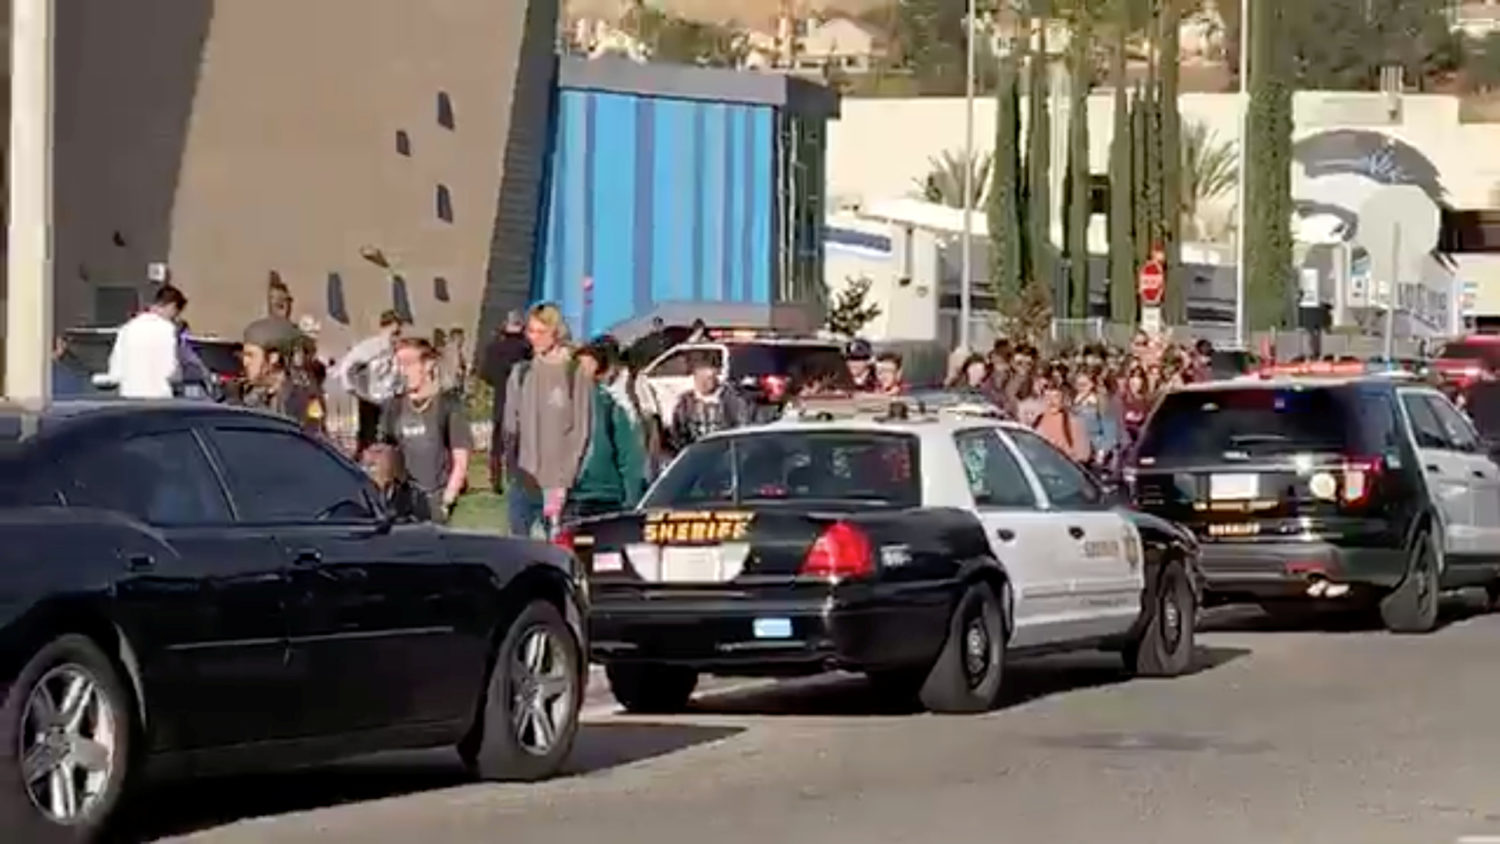 """California police find no motive for school shooting By Steve Gorman SANTA CLARITA, Calif. (Reuters) - A 16-year-old student was carrying out a deliberate plan when he shot five teenagers at his California high school then turned the gun on himself, the local sheriff said on Friday, but authorities have no clues about what sparked the bloodshed. """"We did not find any manifesto, any diary that spelled it out,"""" Los Angeles County Sheriff Alex Villanueva said at a briefing. The gunman, whose identity has not been made public, survived the self-inflicted gunshot wound but was in grave condition in a hospital, Villanueva said. Two of the other five students who were shot in the Thursday morning attack died of their wounds. Detectives worked through the night to follow up on tips related to the shooting at Saugus High School in Santa Clarita, about 40 miles (65 km) north of Los Angeles. The shooting, which was caught on video, unfolded in 16 seconds, police said. Arriving at school on his 16th birthday, the suspect pulled a .45 semi-automatic pistol from his backpack in an outdoor courtyard, stood in one place and shot his victims in rapid succession before turning the gun and firing the last bullet into his head. Villanueva said authorities did not know the origin of the gun used, nor how the shooter got his hands on it. All Hart District schools in Santa Clarita were closed on Friday, the Santa Clarita Valley Sheriff's office said on Twitter, out of respect for the victims and their families. Two girls aged 14 and 15 were being treated at Providence Holy Cross Medical Center in Mission Hills, California and were listed in good and fair condition, a hospital spokeswoman said early on Friday. At the Henry Mayo Hospital in Santa Clarita, authorities said a 14-year-old boy was treated and released. Two other students who had been taken there died. A hospital spokesman could not immediately be reached on Friday. Villanueva identified one of the students killed as Gracie Anne """